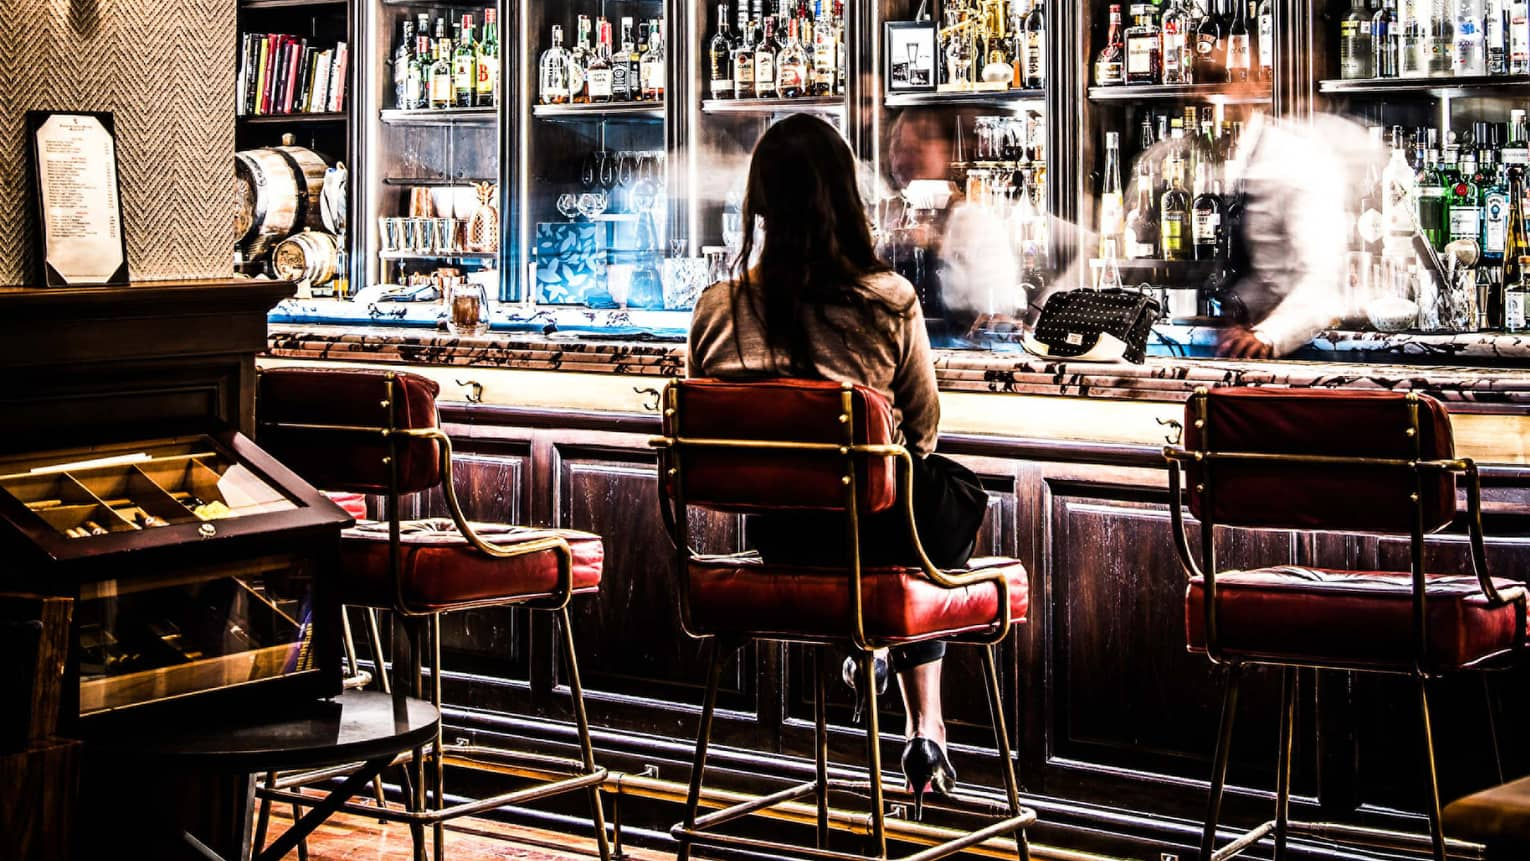 Woman sits on Fifty Mils plush red bar stool as mixologists work busily in front of liquor display